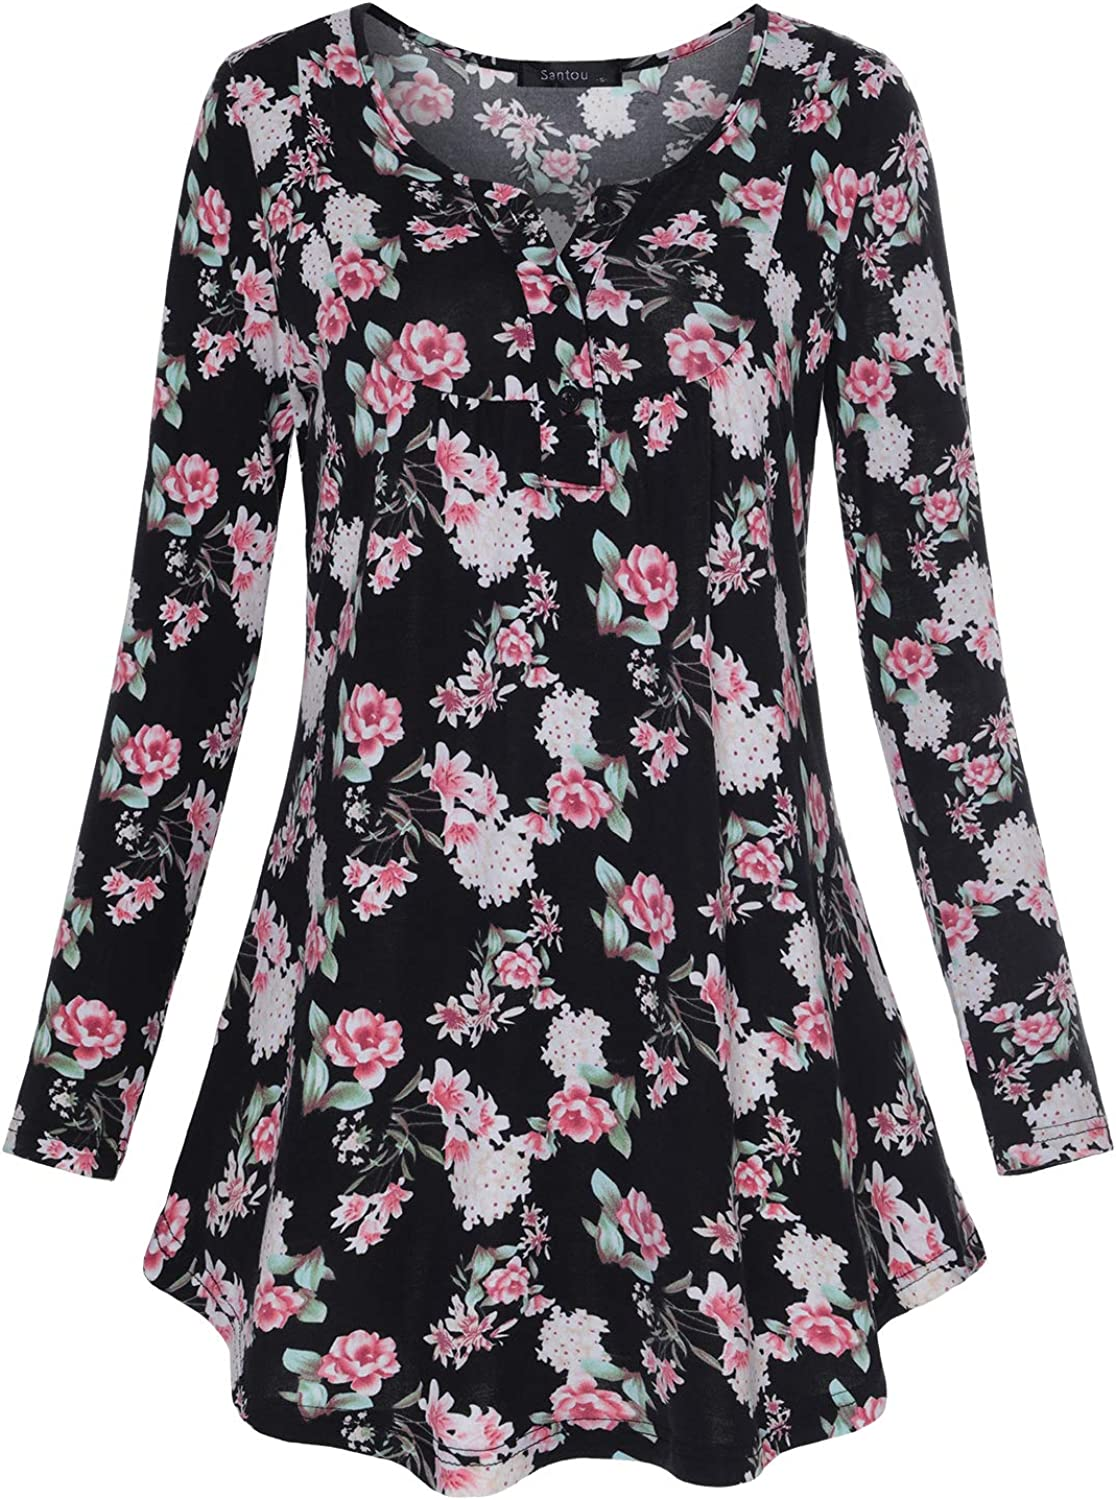 Women's Casual Floral Long Sleeve Henley V Neck Flare Pleated Tunic Blouse Shirt